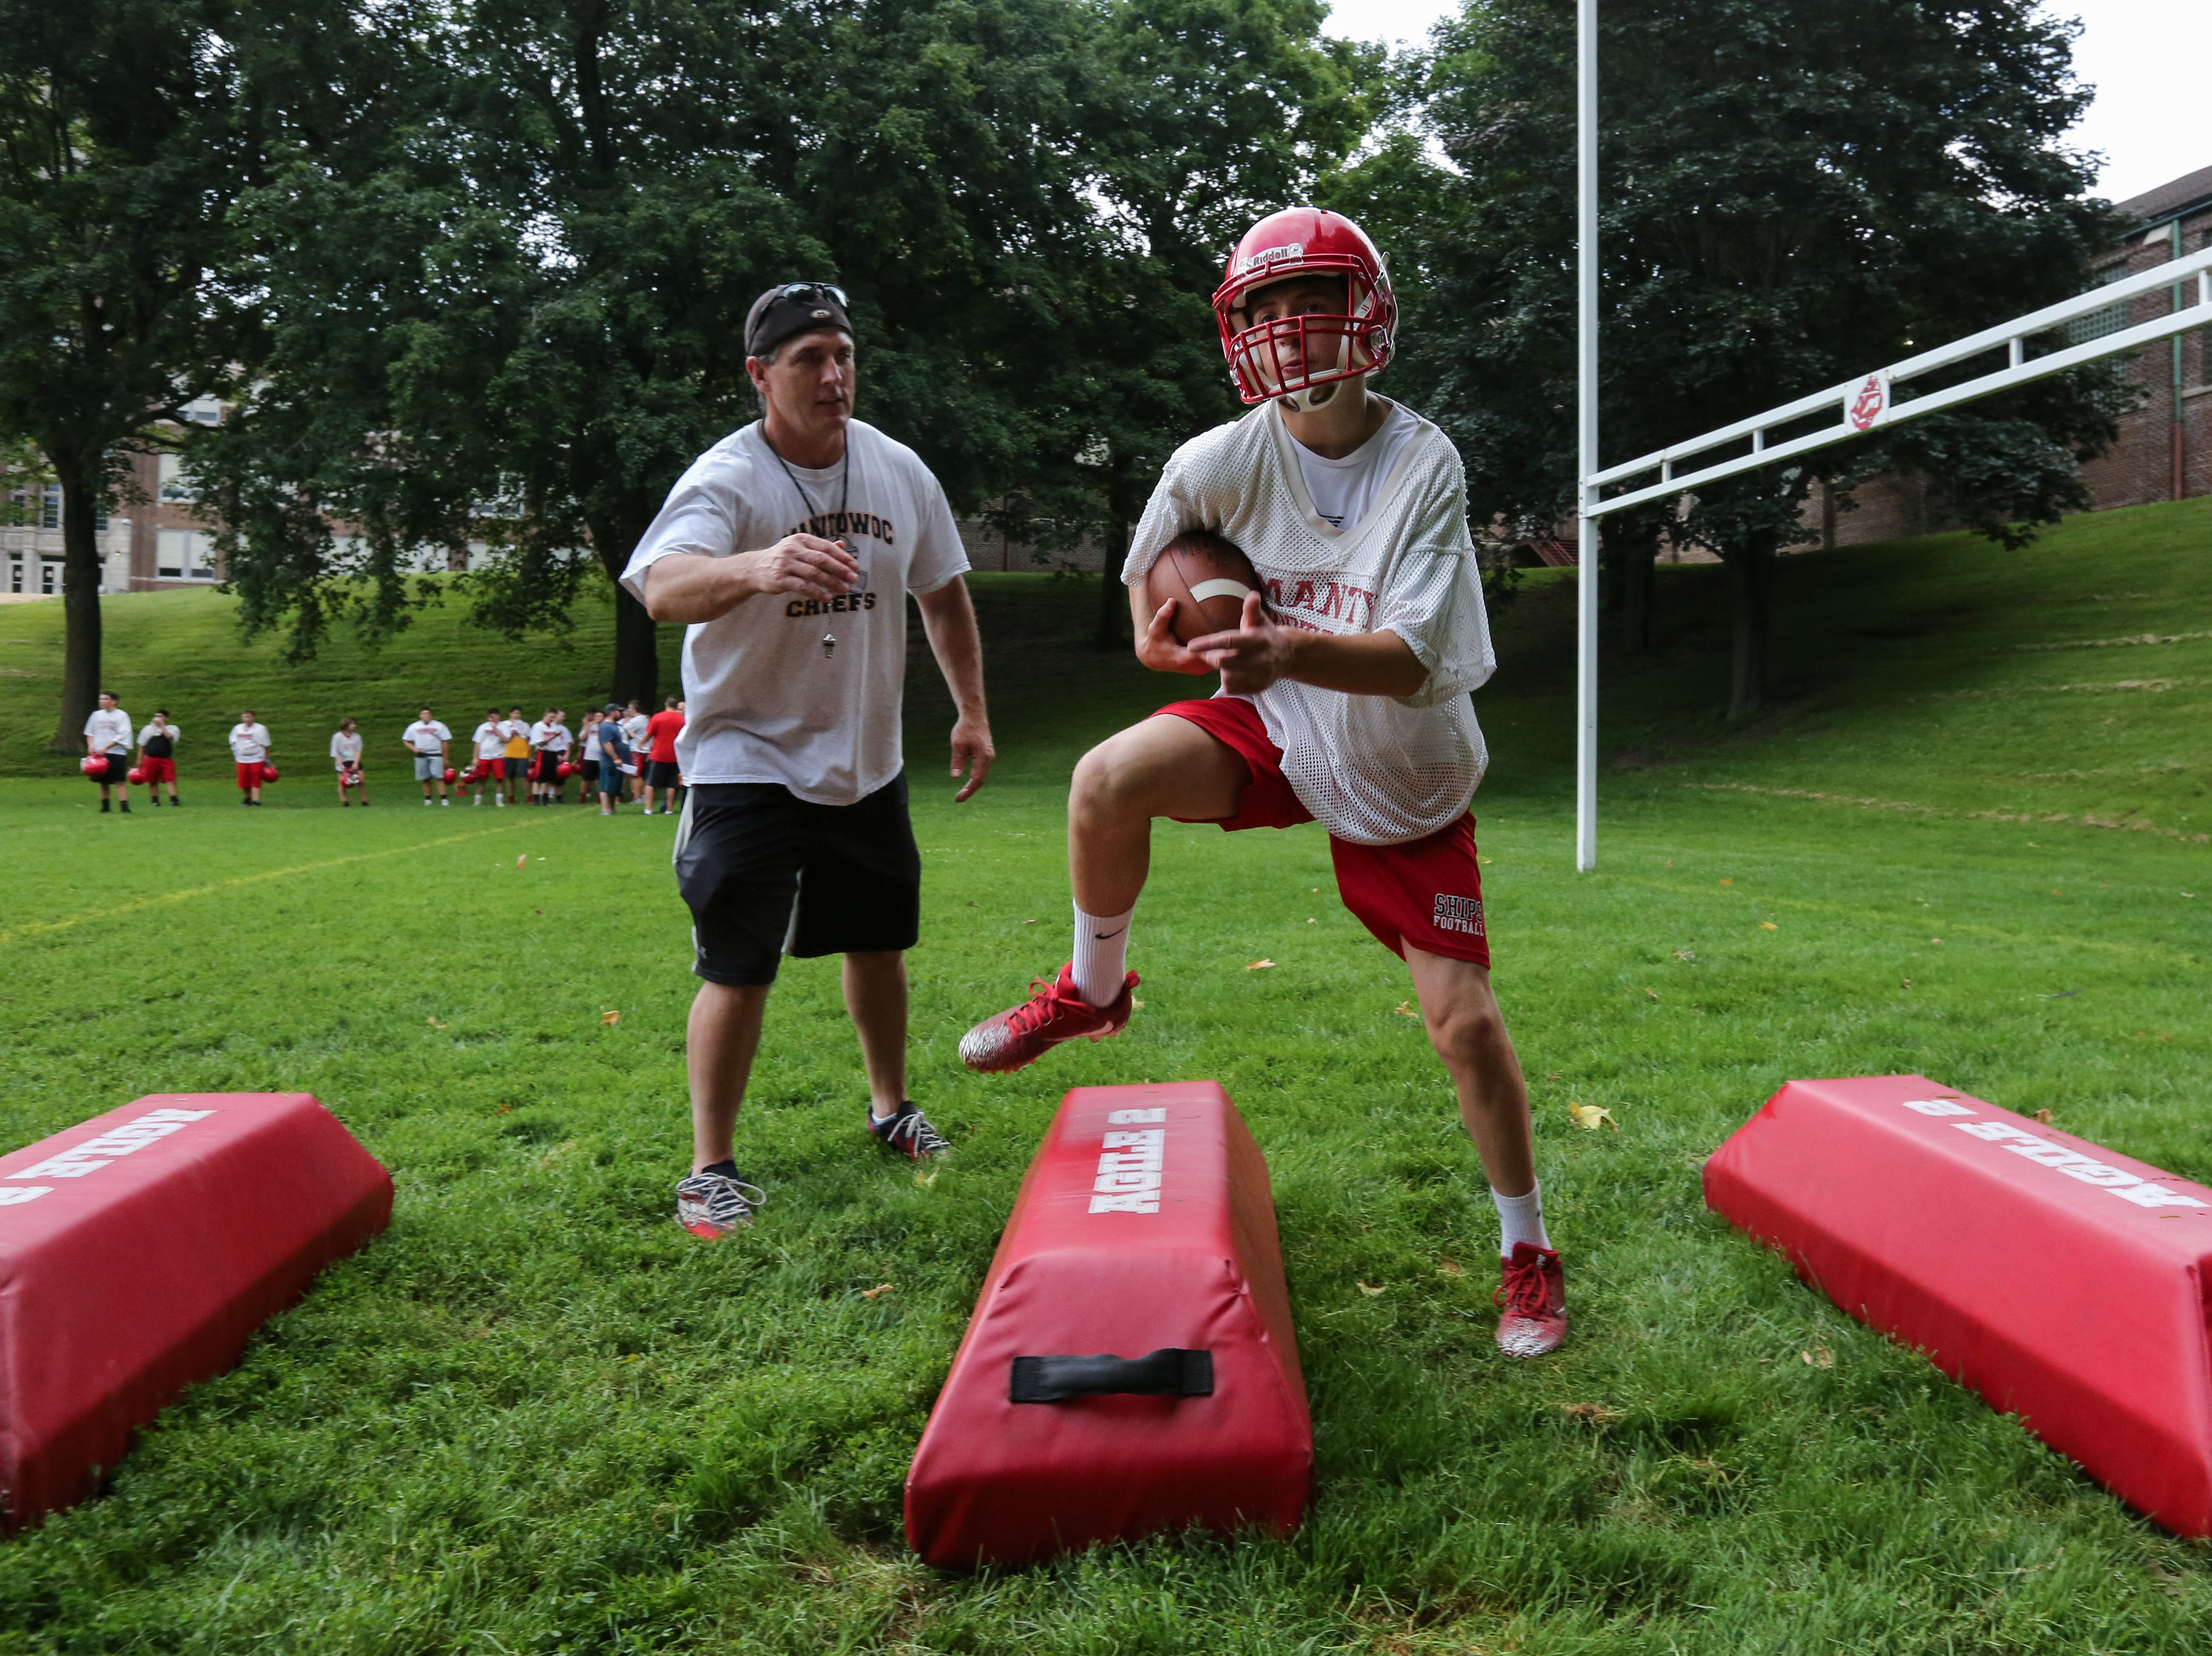 Lincoln's Ethan Riske, right, does an agility drill during the Ships' first football practice of the season at Manitowoc Lincoln High School Wednesday, August 1, 2018, in Manitowoc, Wis. Josh Clark/USA TODAY NETWORK-Wisconsin